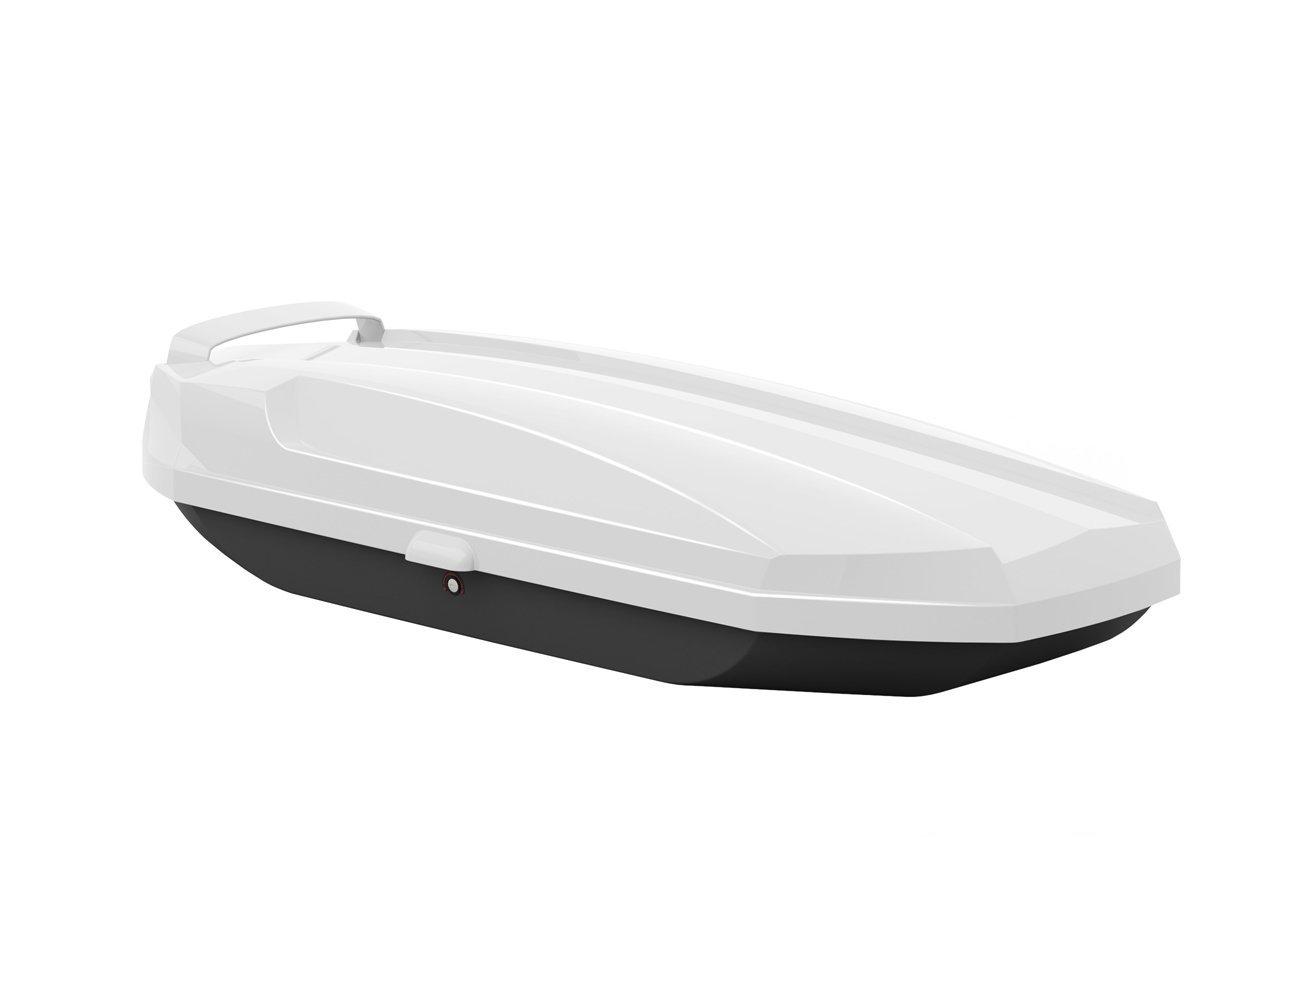 Slimline Car Roof Box - White 850L